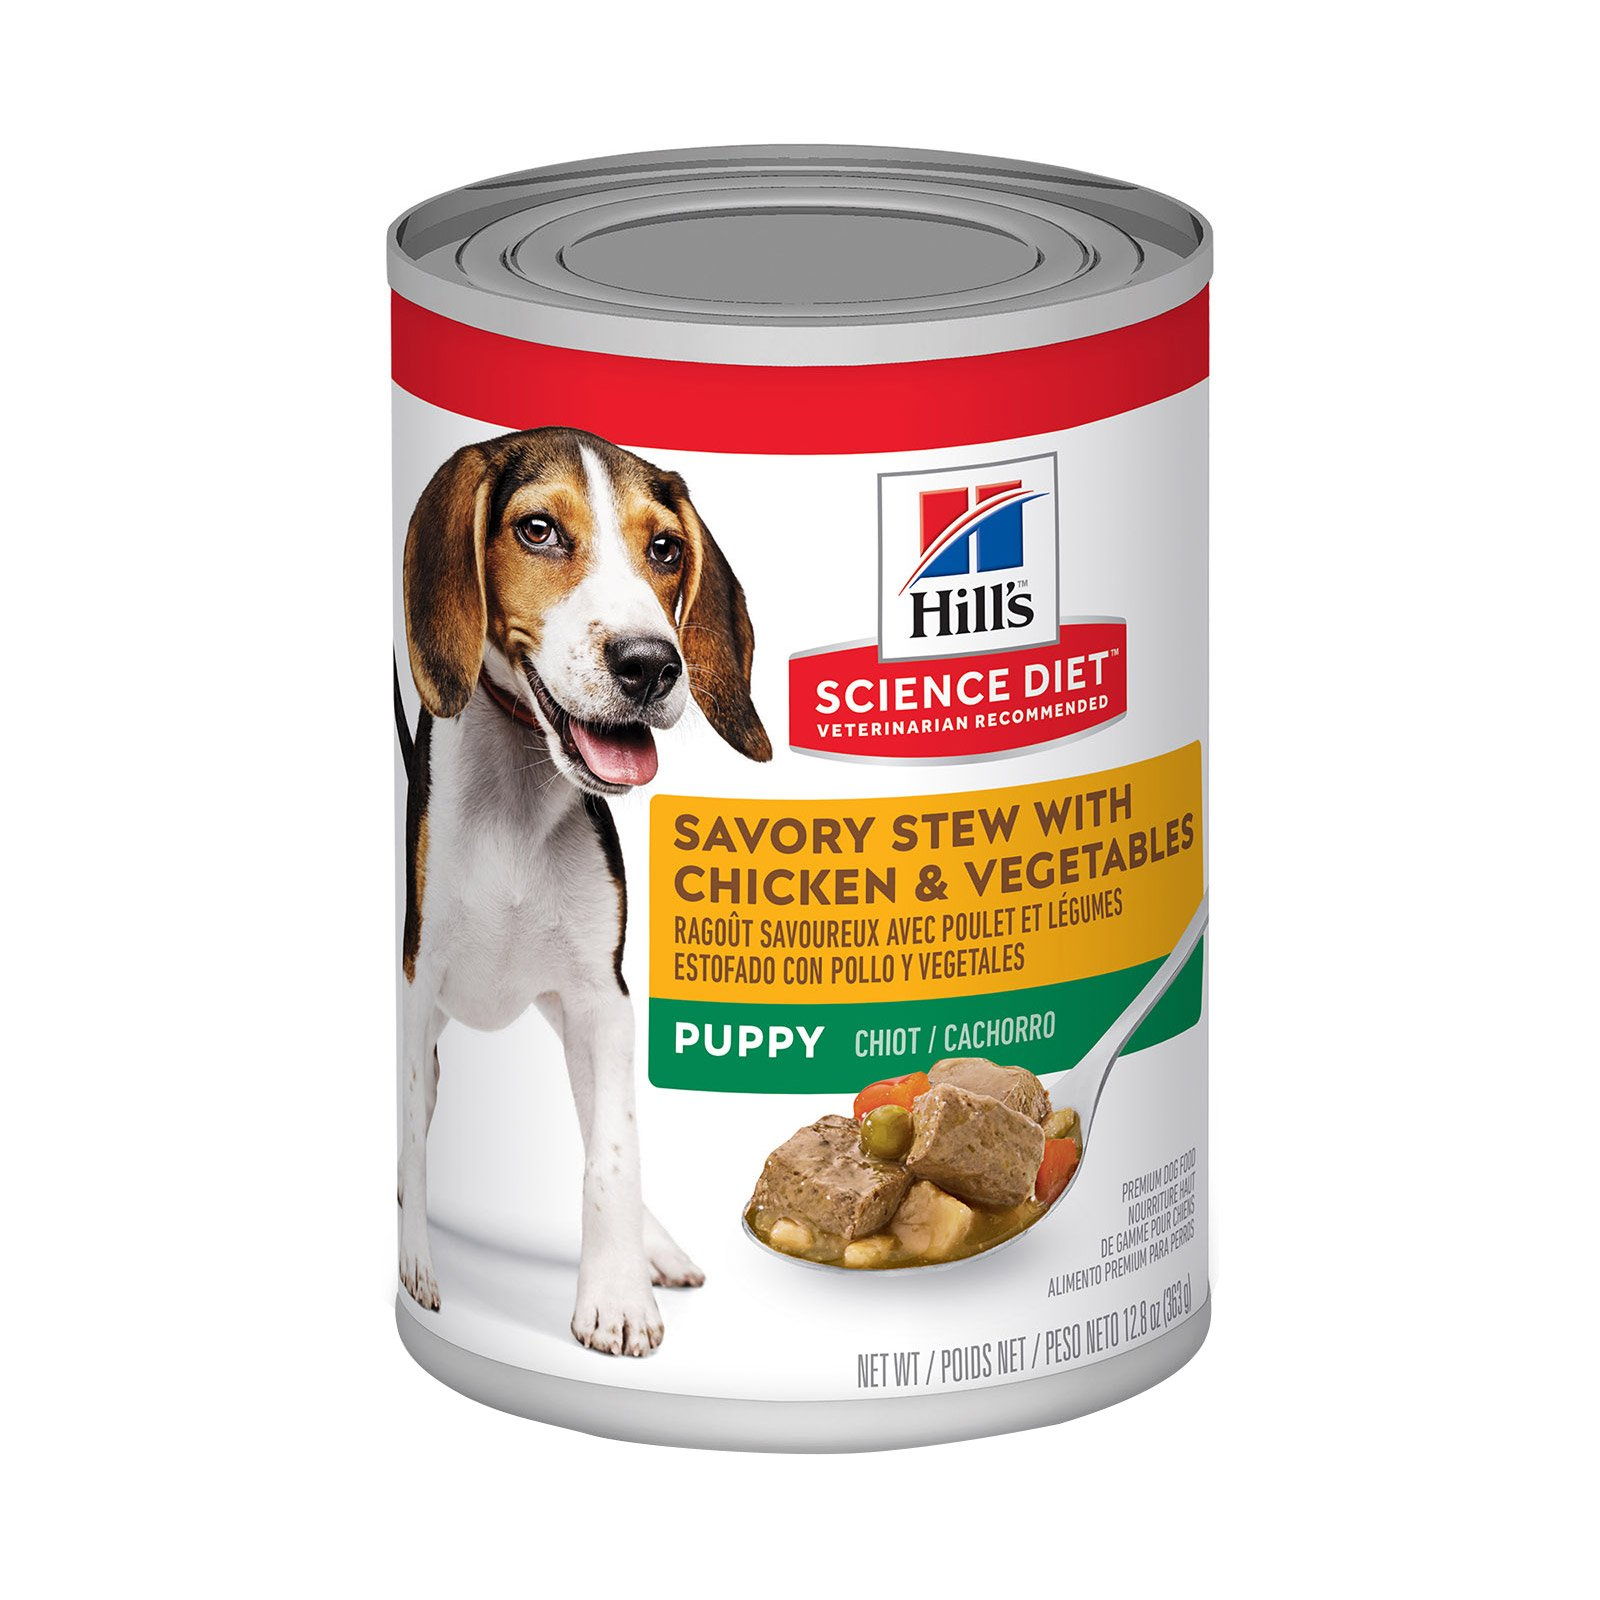 Hill's Science Diet Puppy Savory Stew Chicken & Vegetable Canned Dog Food 363 Gm